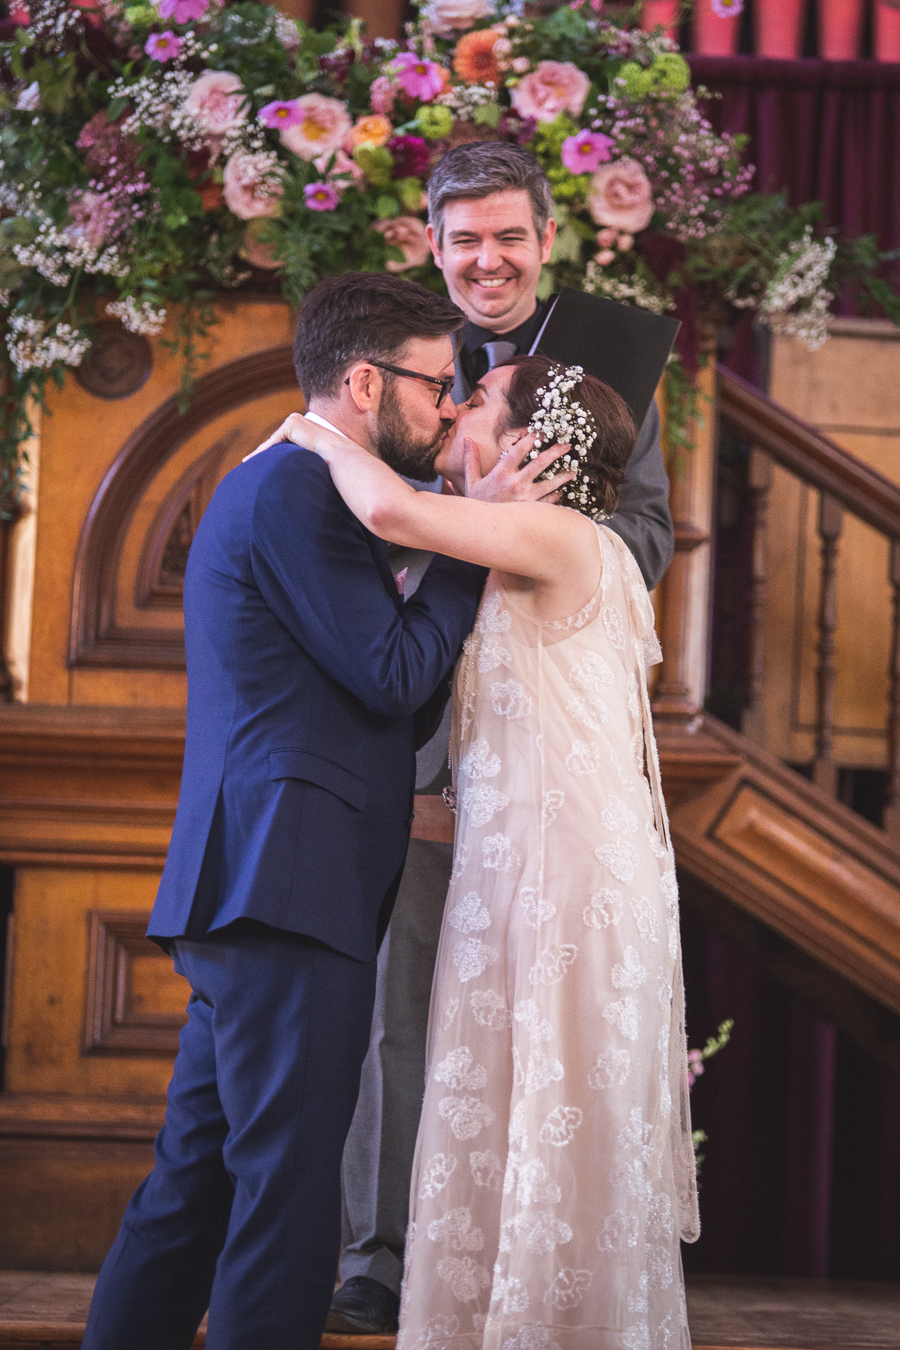 Eclectic, individual and timeless wedding styling at Hackney Round Chapel with images by Sam Taylor Photography (9)